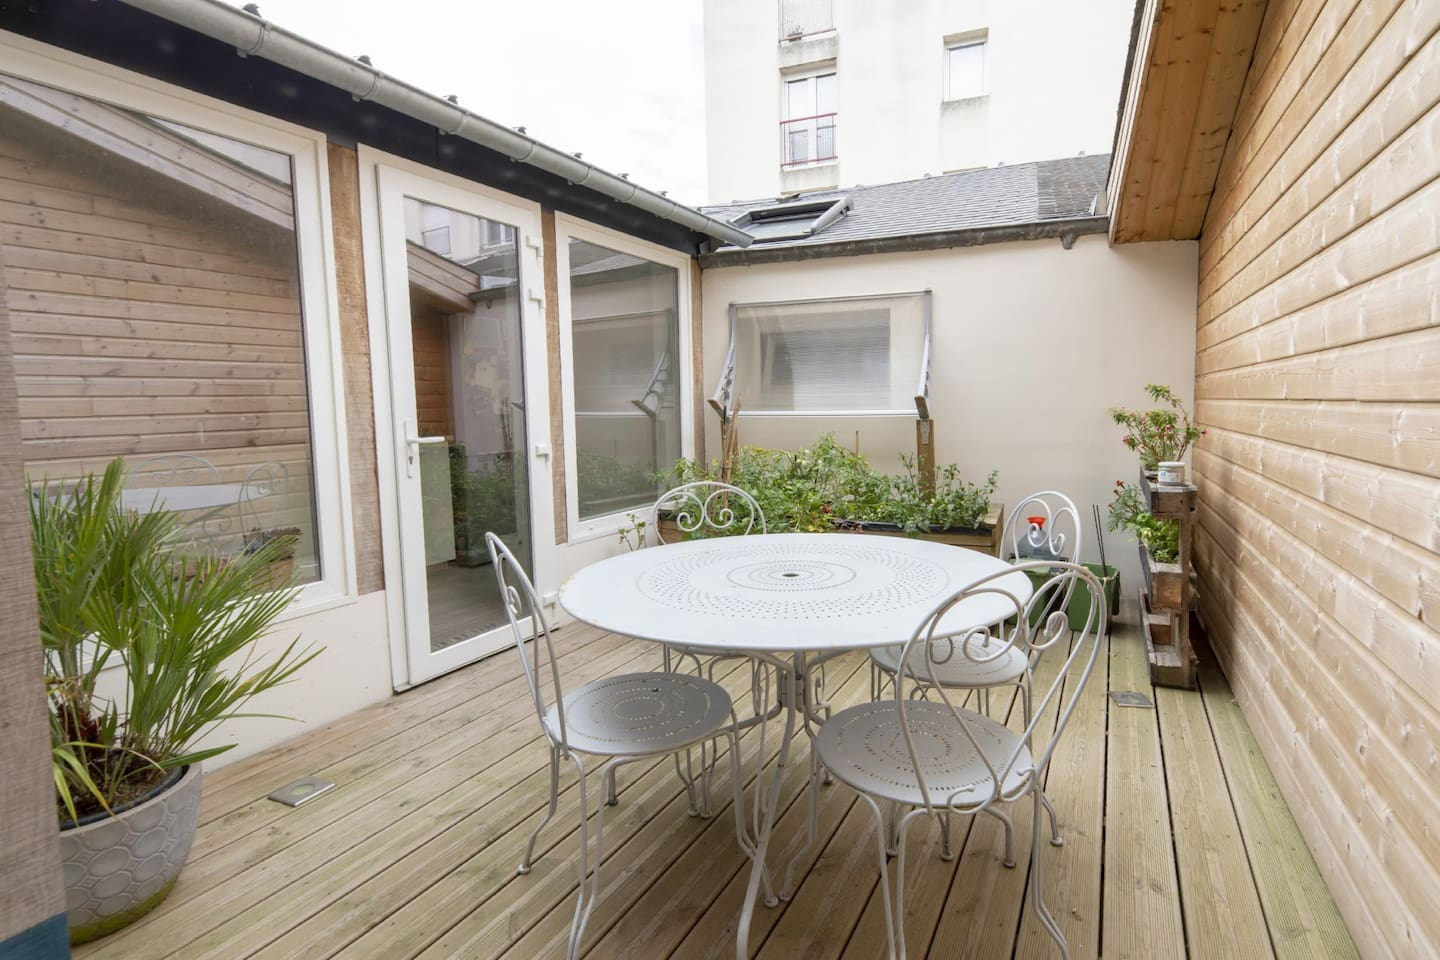 Really charming patio with garden table and chairs.